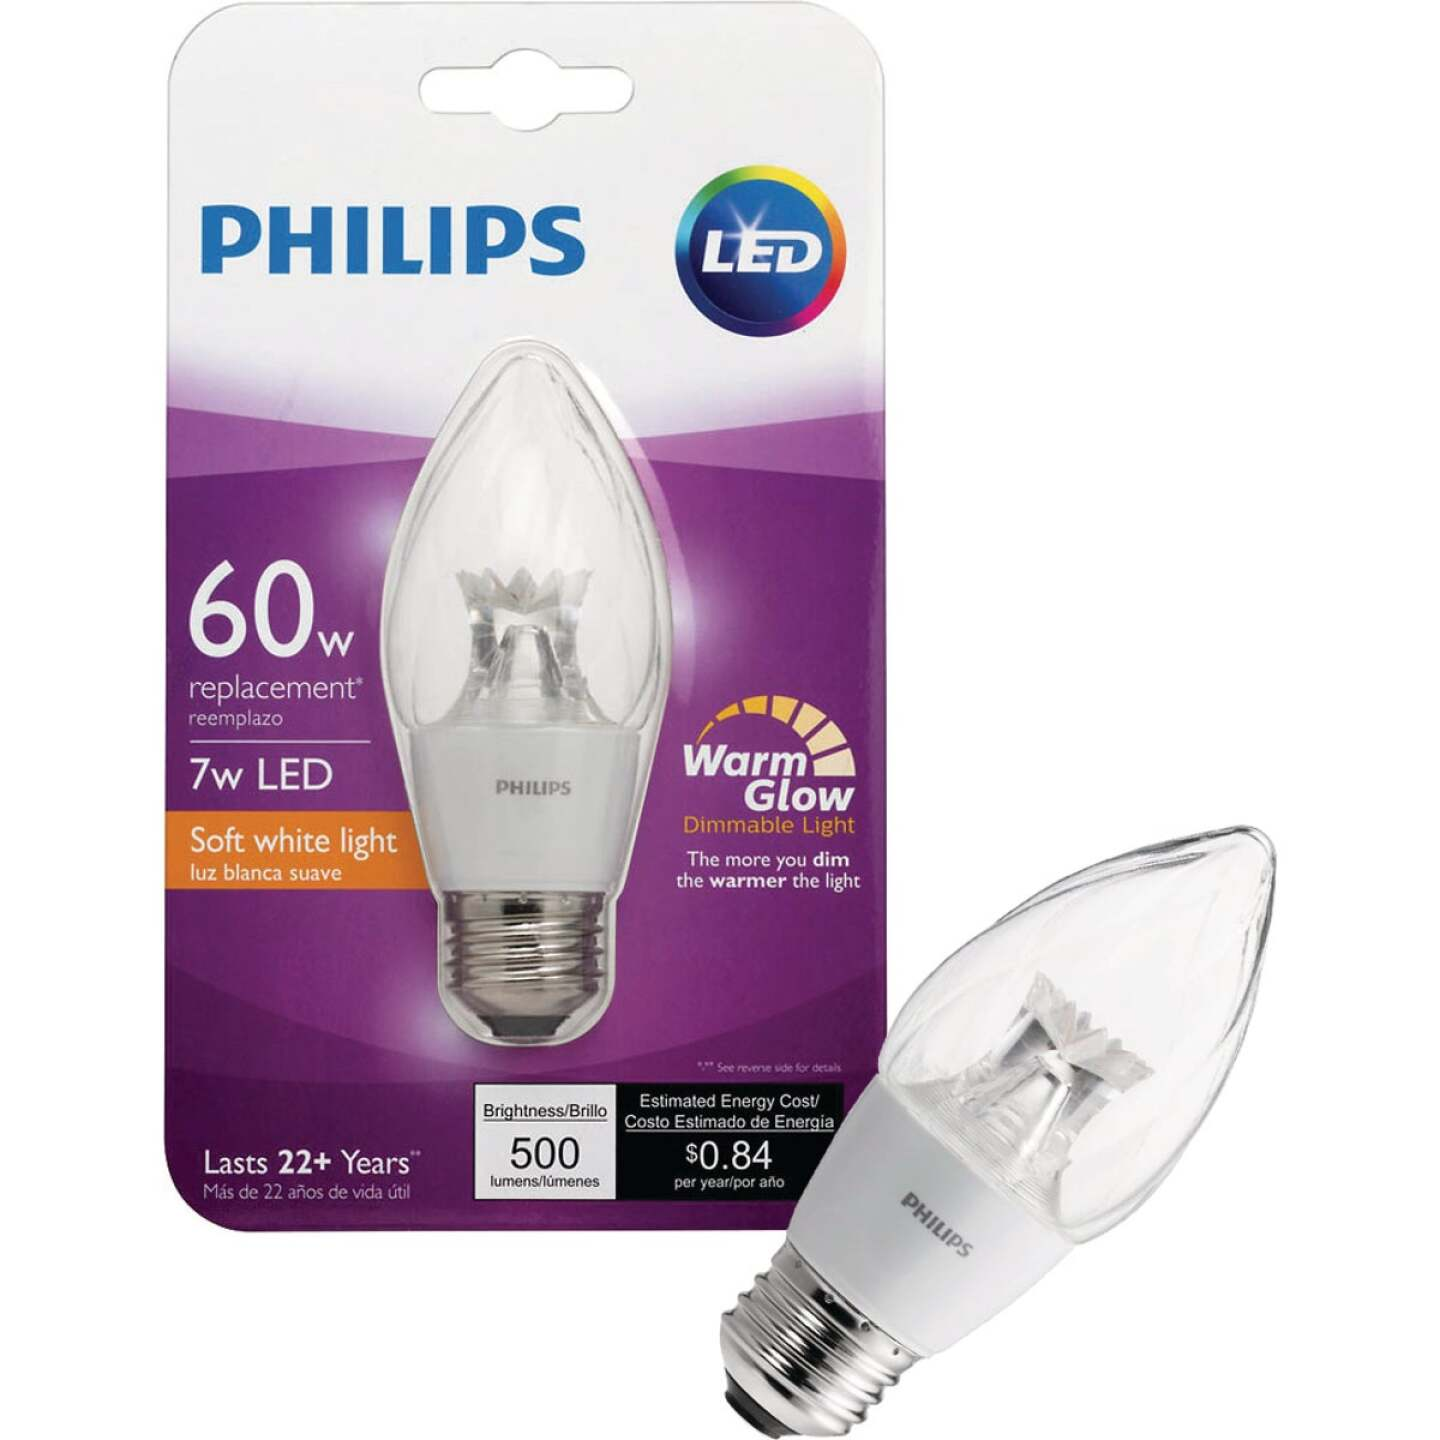 Philips Warm Glow 60W Equivalent Soft White F15 Medium Dimmable Post LED Decorative Light Bulb Image 1